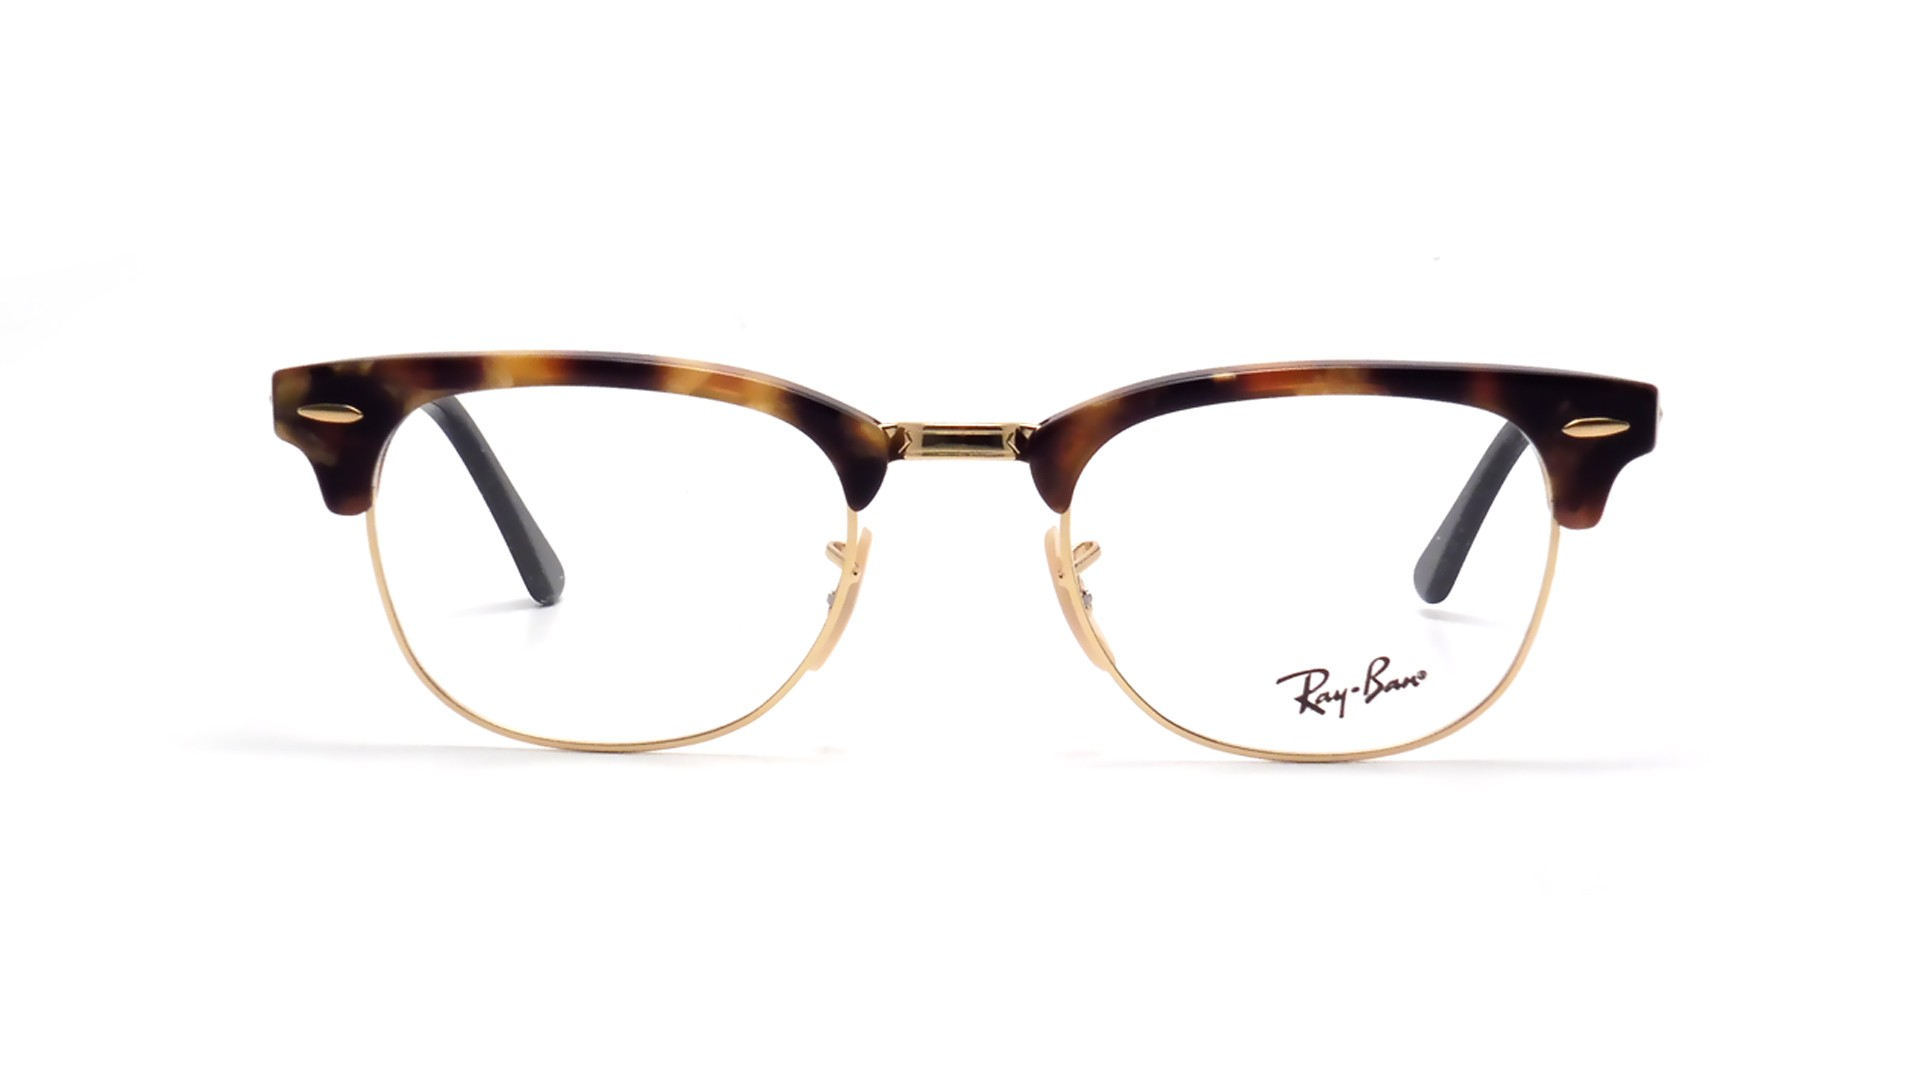 Ray Ban Clubmaster Classic Tortoise - atlantabeadgallery